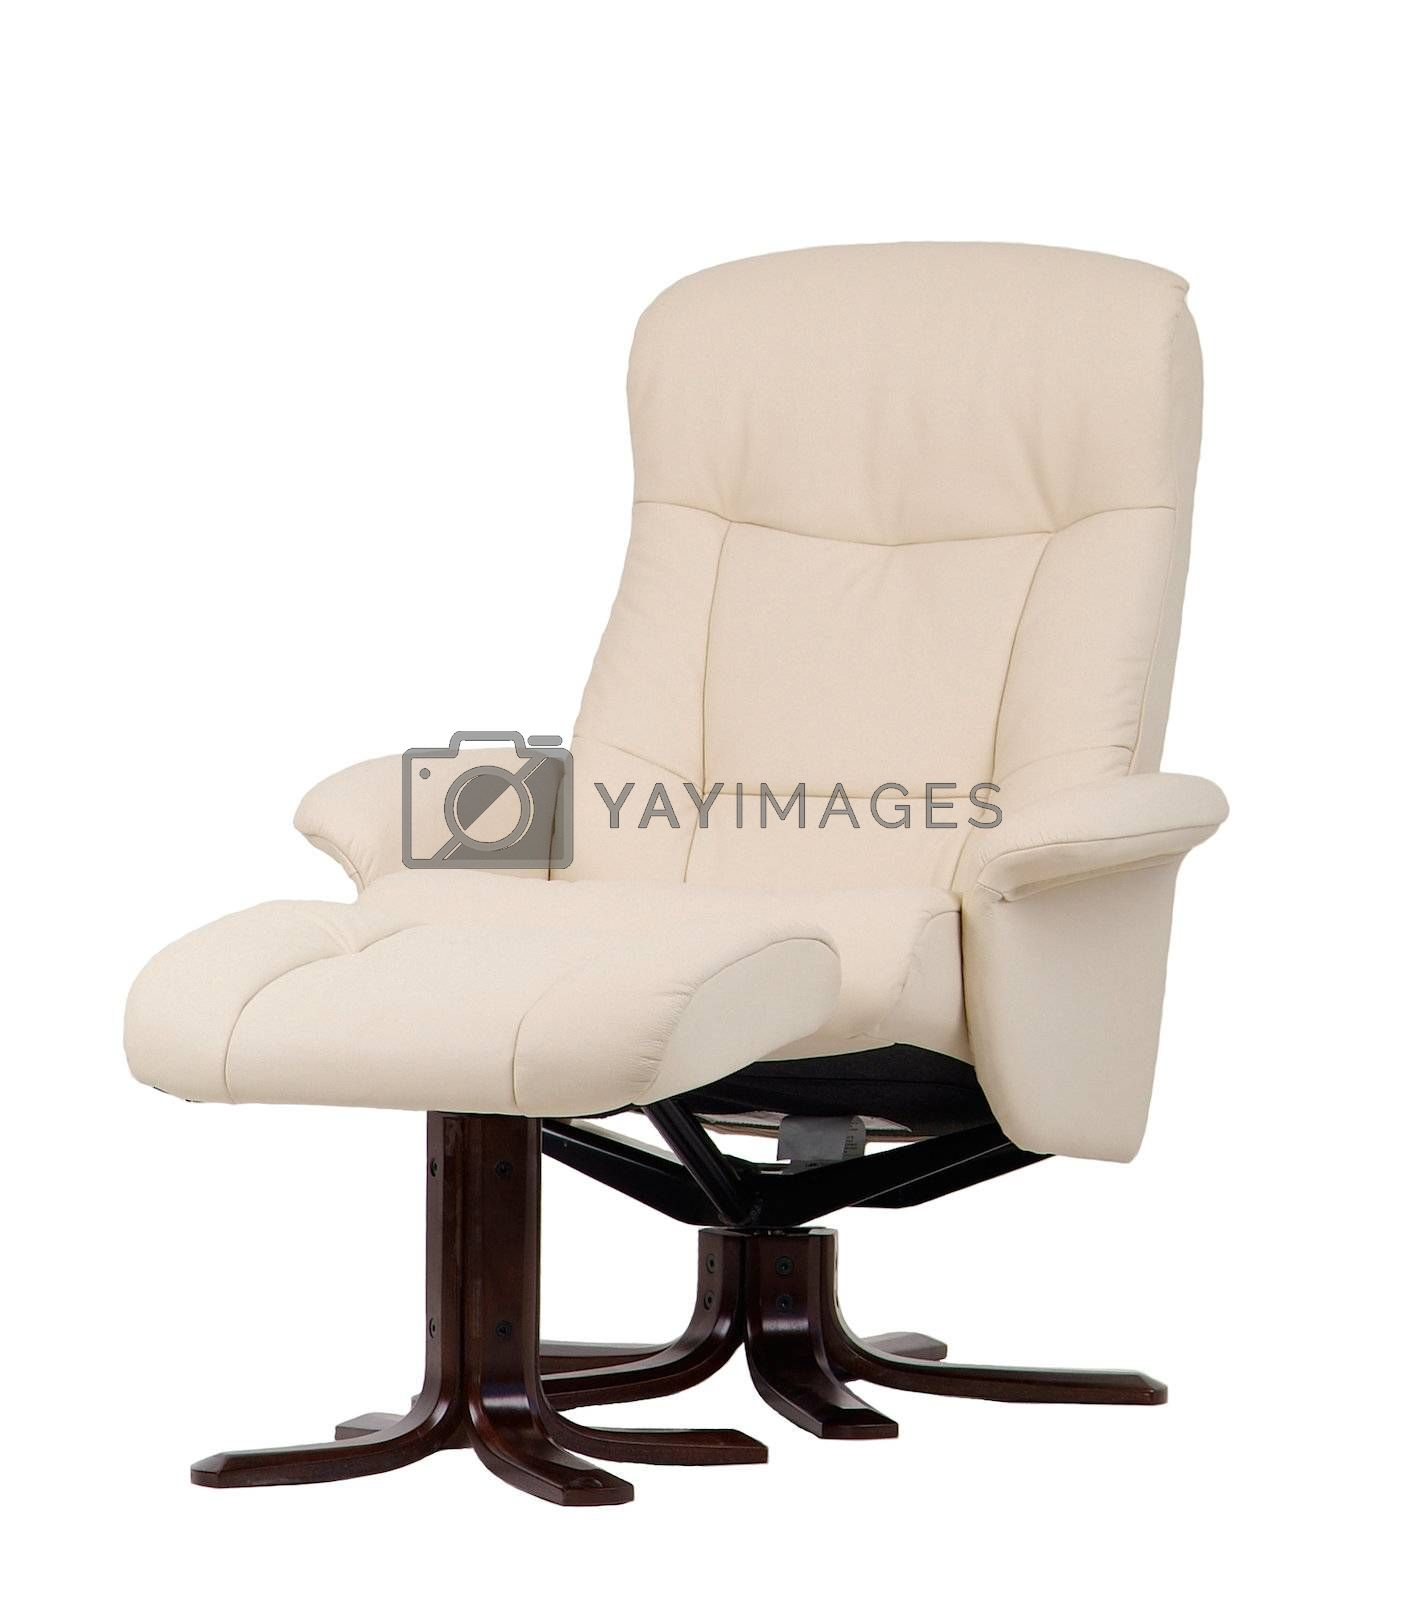 Off-white leather recliner. by epixx